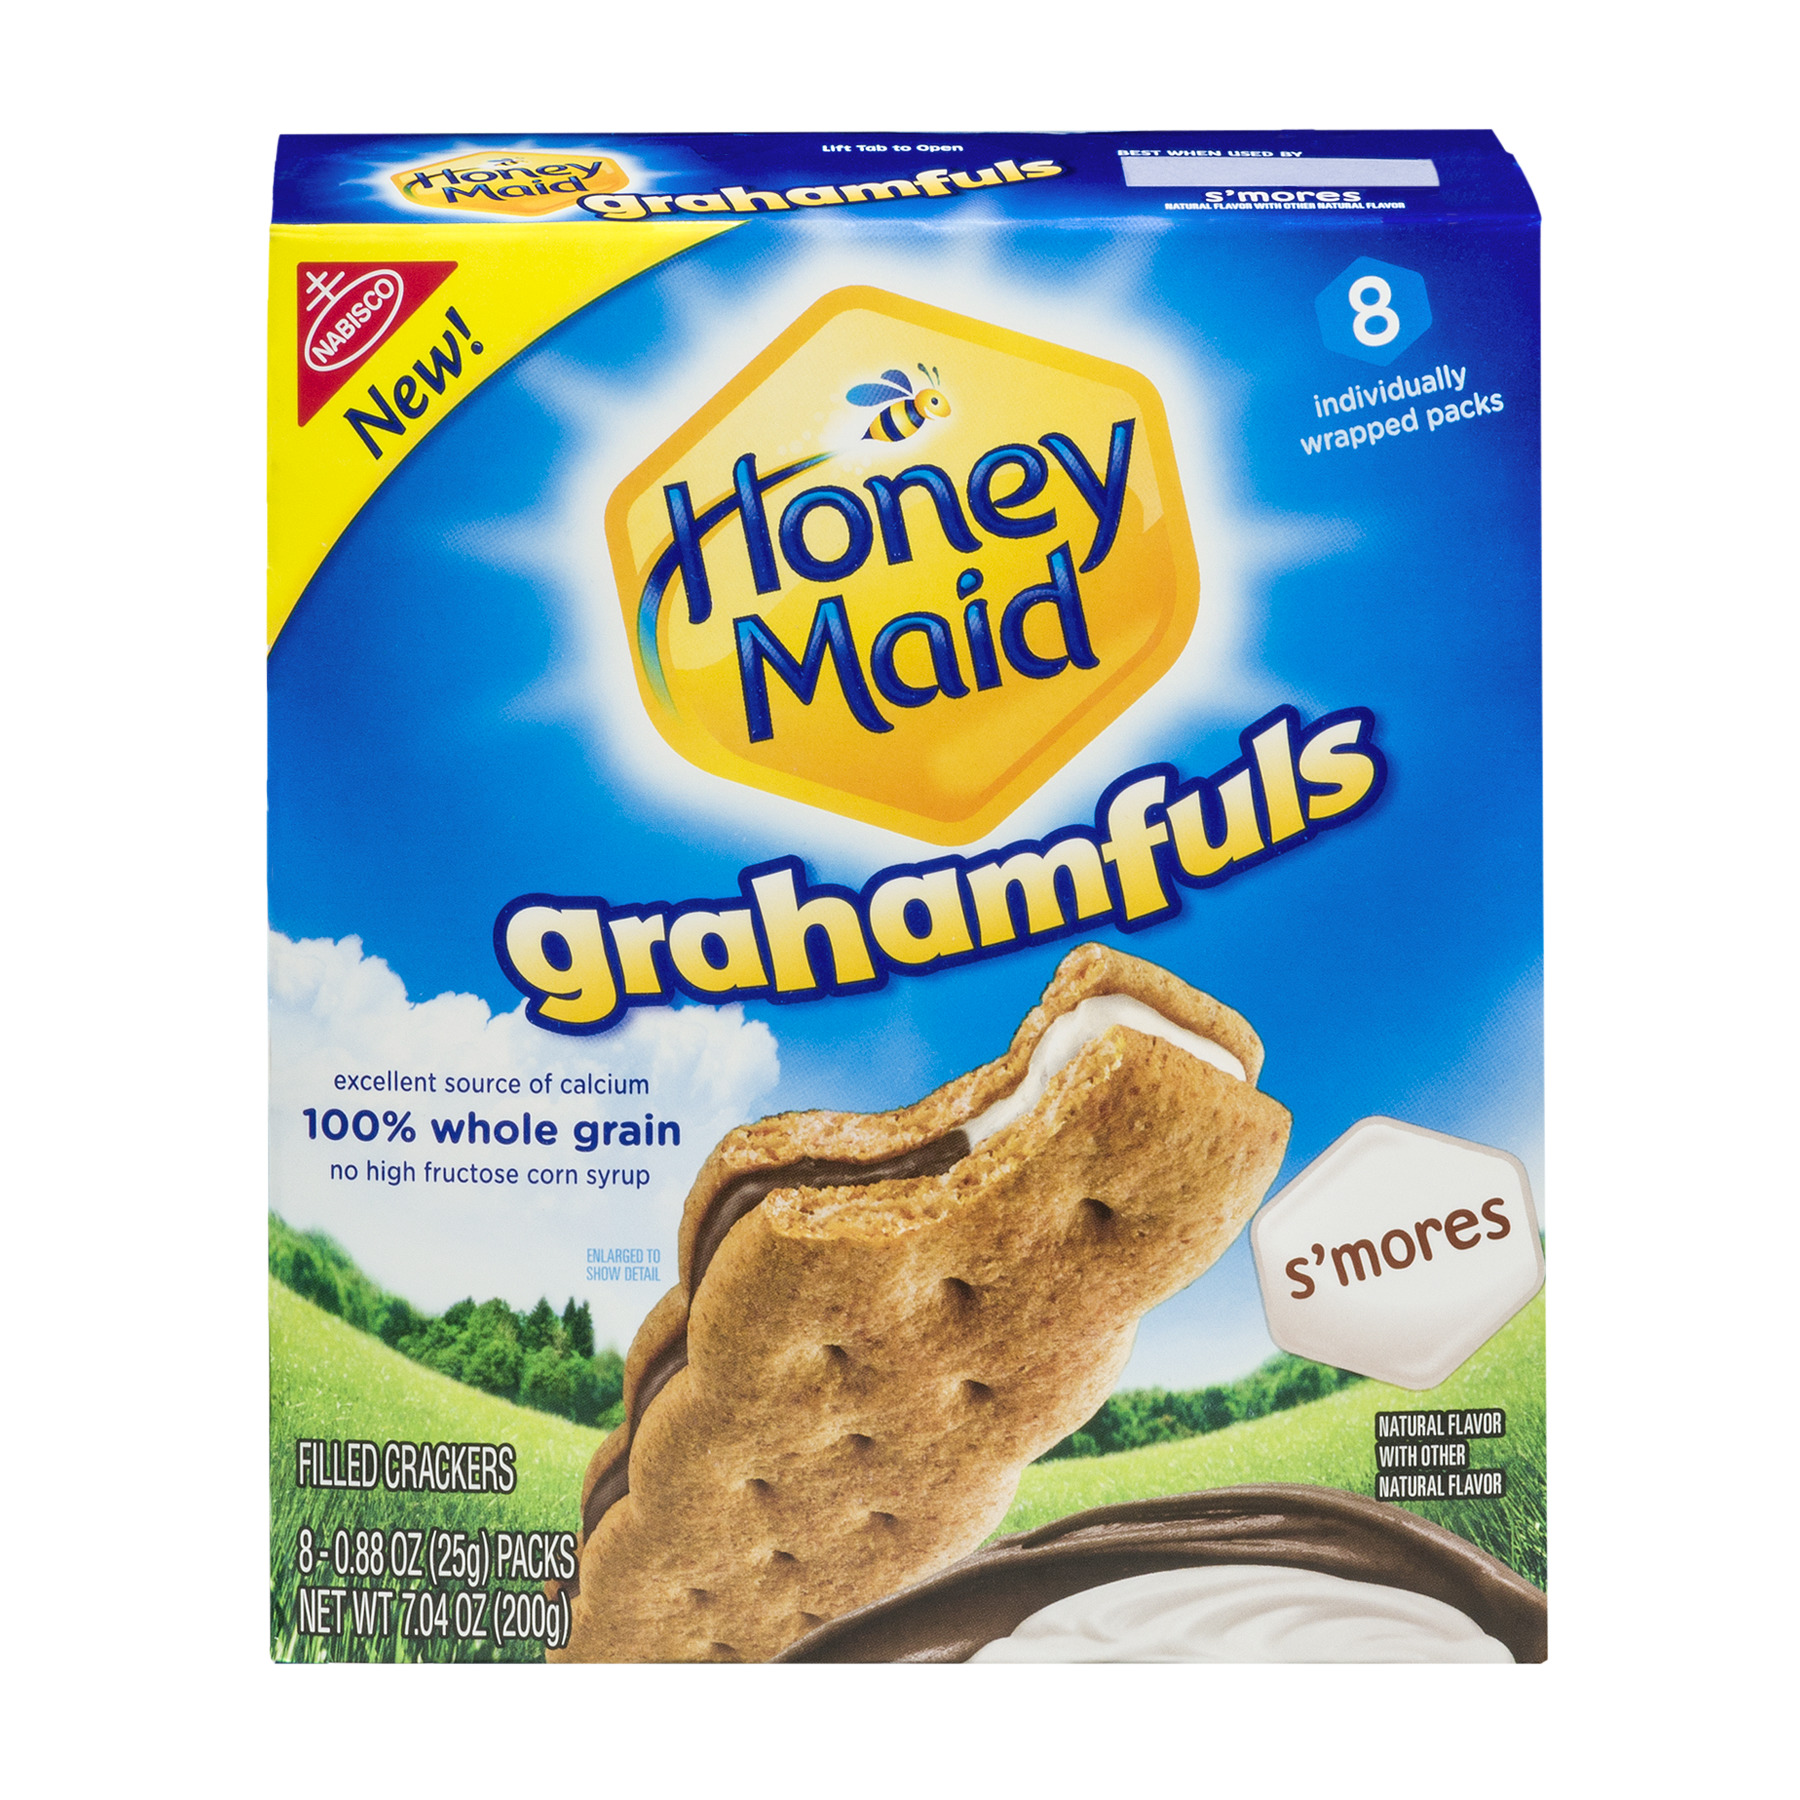 Nabisco Honey Maid Grahamfuls S'mores Filled Crackers - 8 CT0.88 OZ